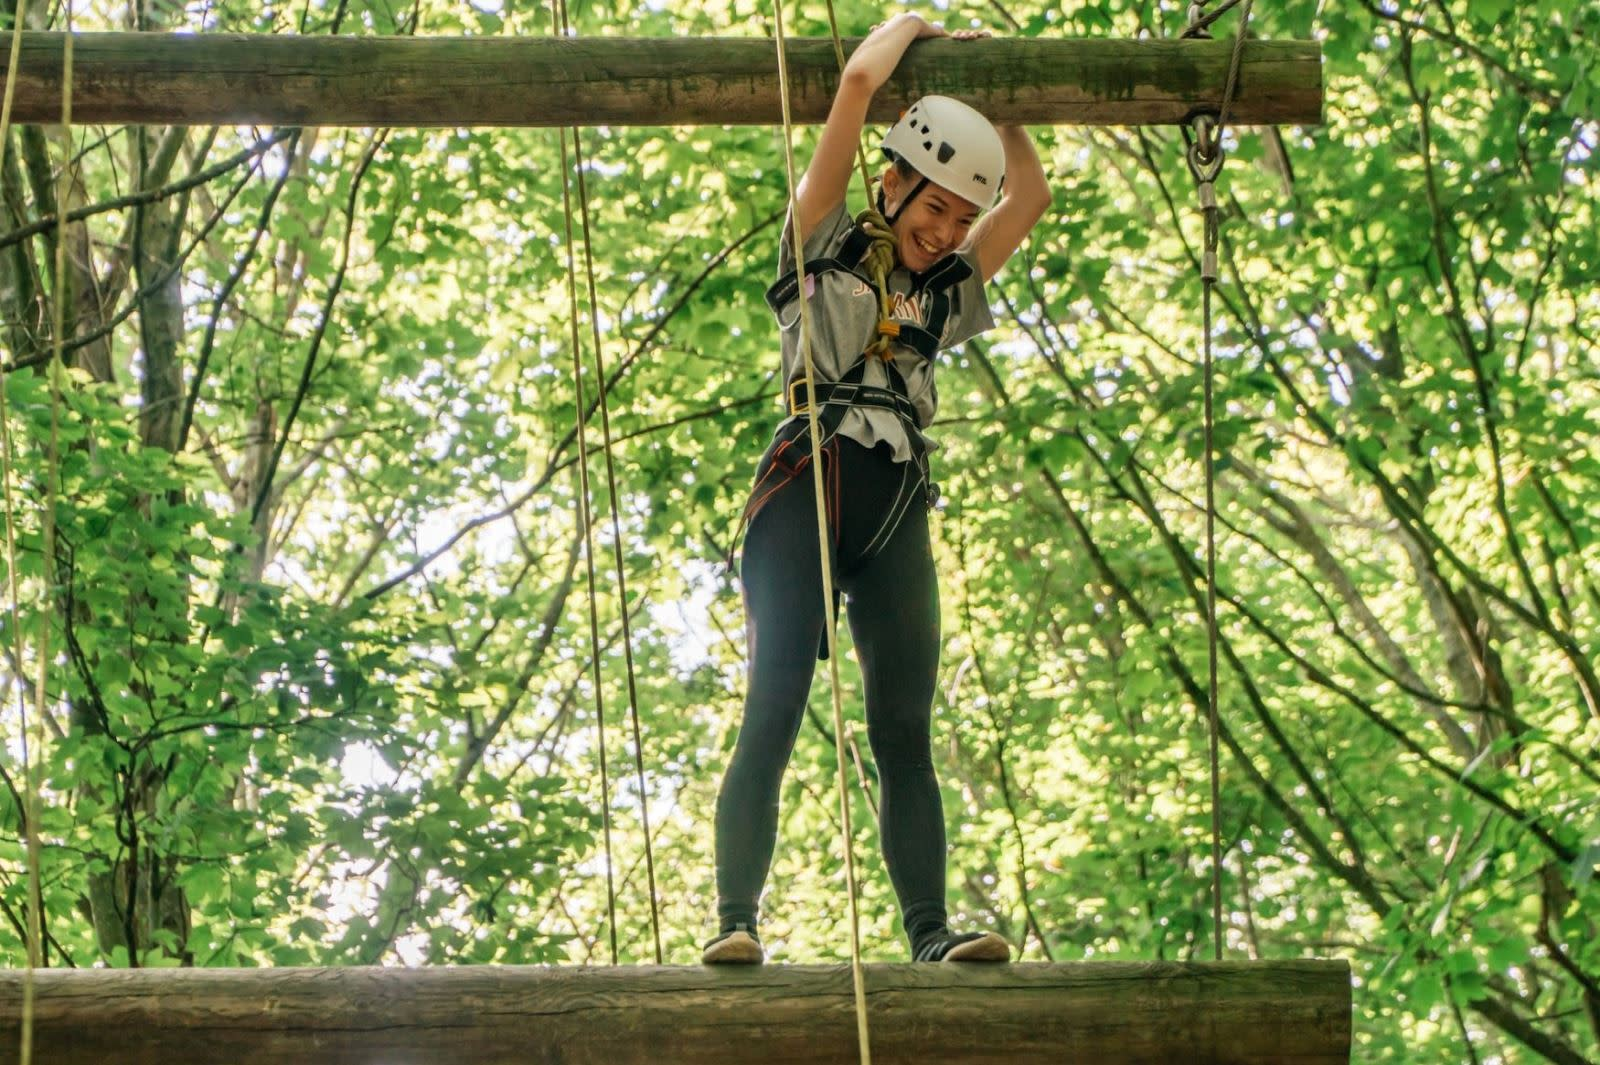 Kids on the High Ropes in a wooded area